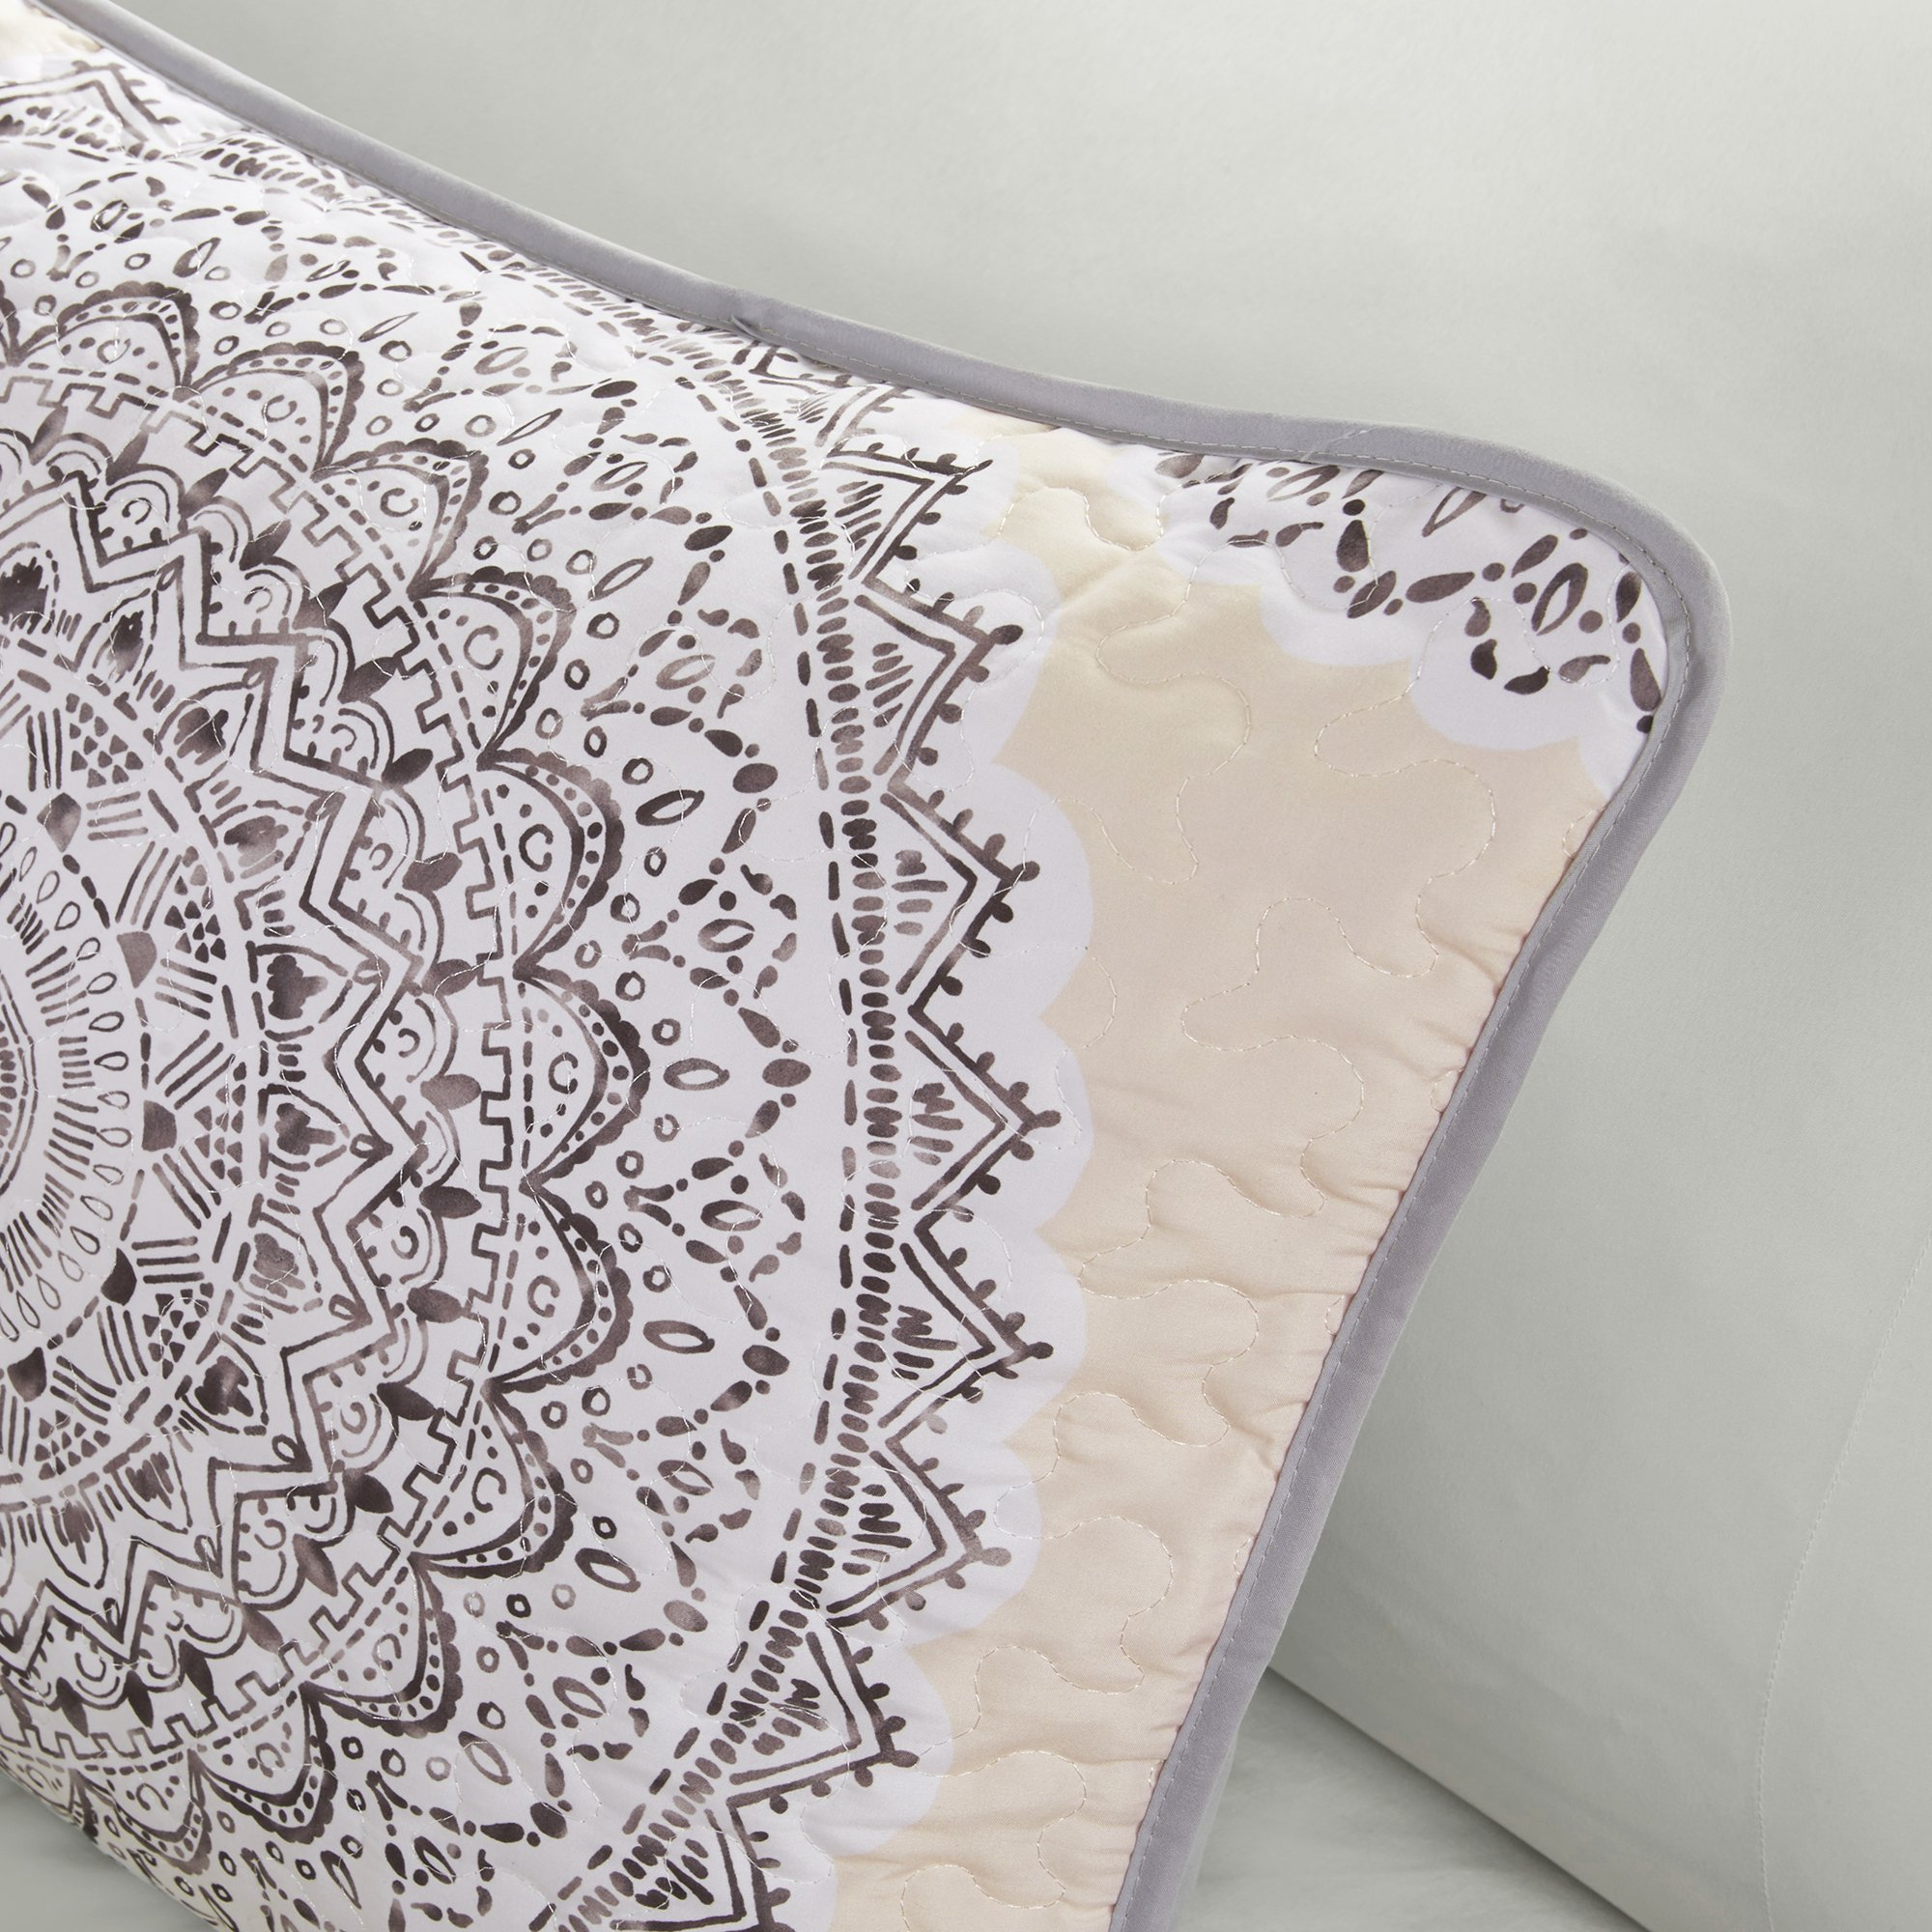 Bedding Sets Twin & Twin Xl - Quilt/Coverlet Set - 2 Pieces - Blush/Pink/Grey - Printed Medallions - Lightweight Twin Size Bedding Sets For Girls - Bedspread Fits Twin & Twin Xl - Adele by Comfort Spaces (Image #3)